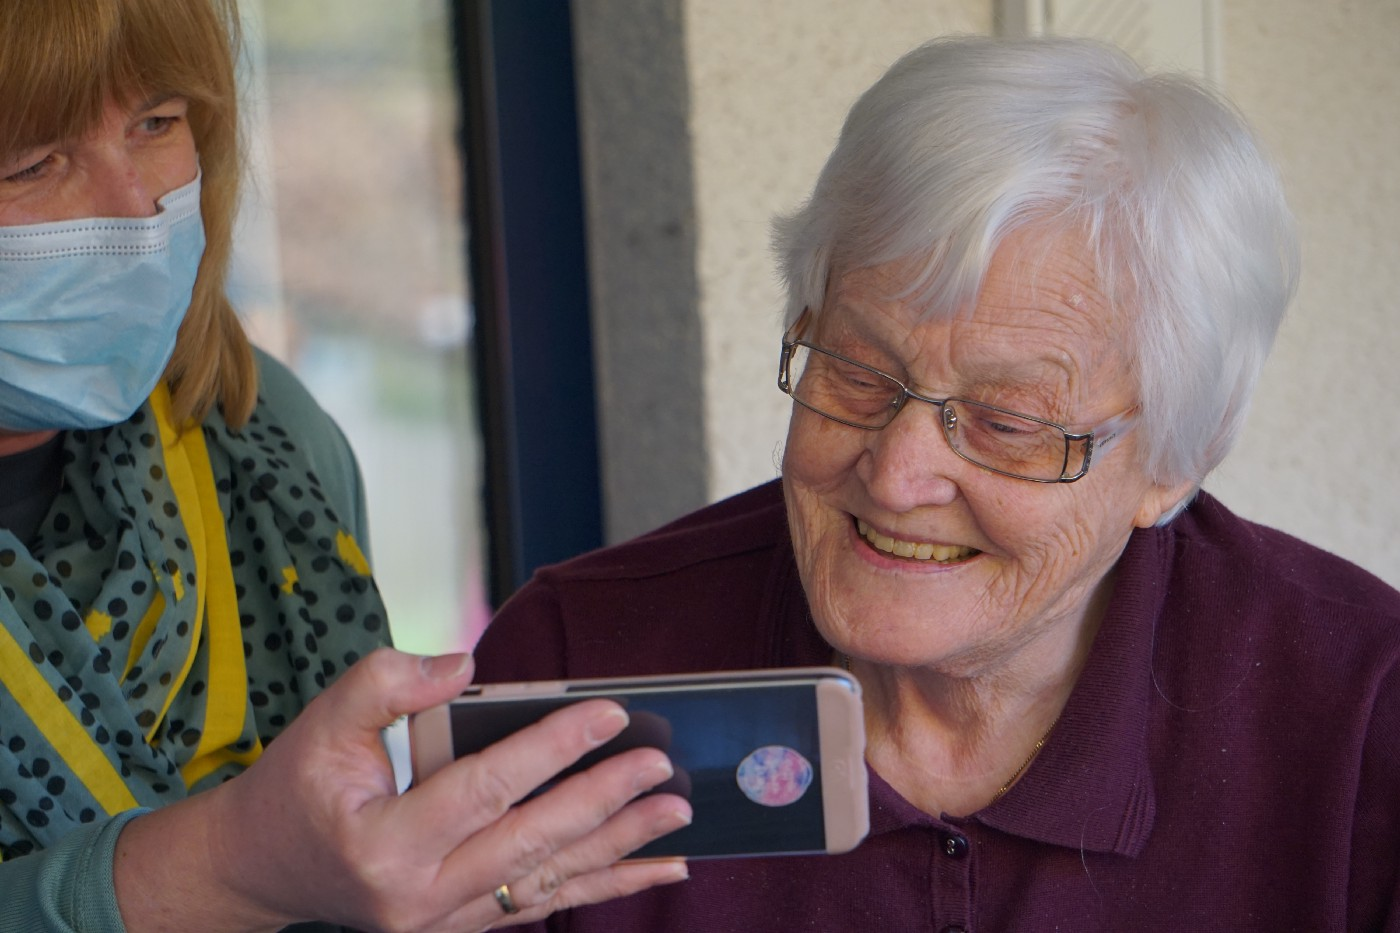 elderly woman smiles while looking at phone held by another woman wearing a mask